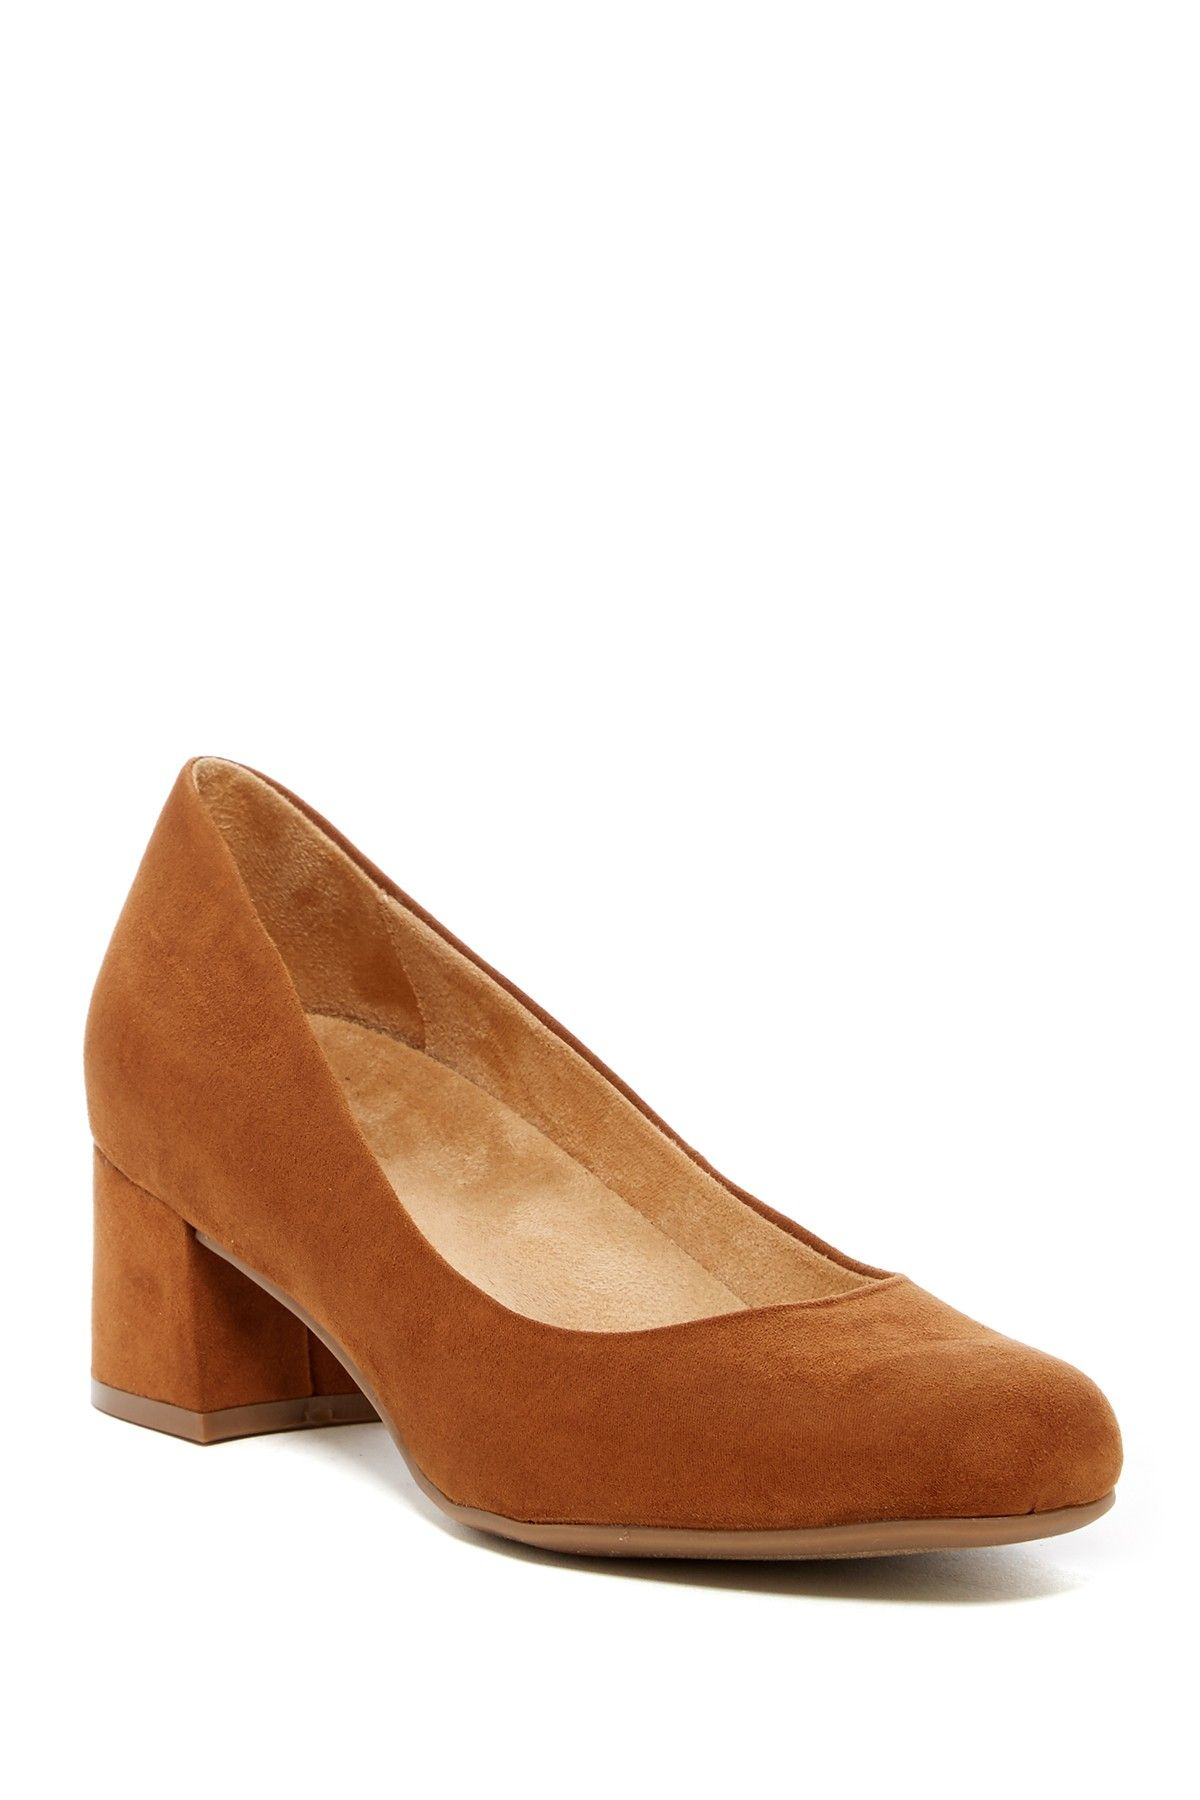 1b14e000df69 Image of Naturalizer Donelle Dress Pump - Wide Width Available